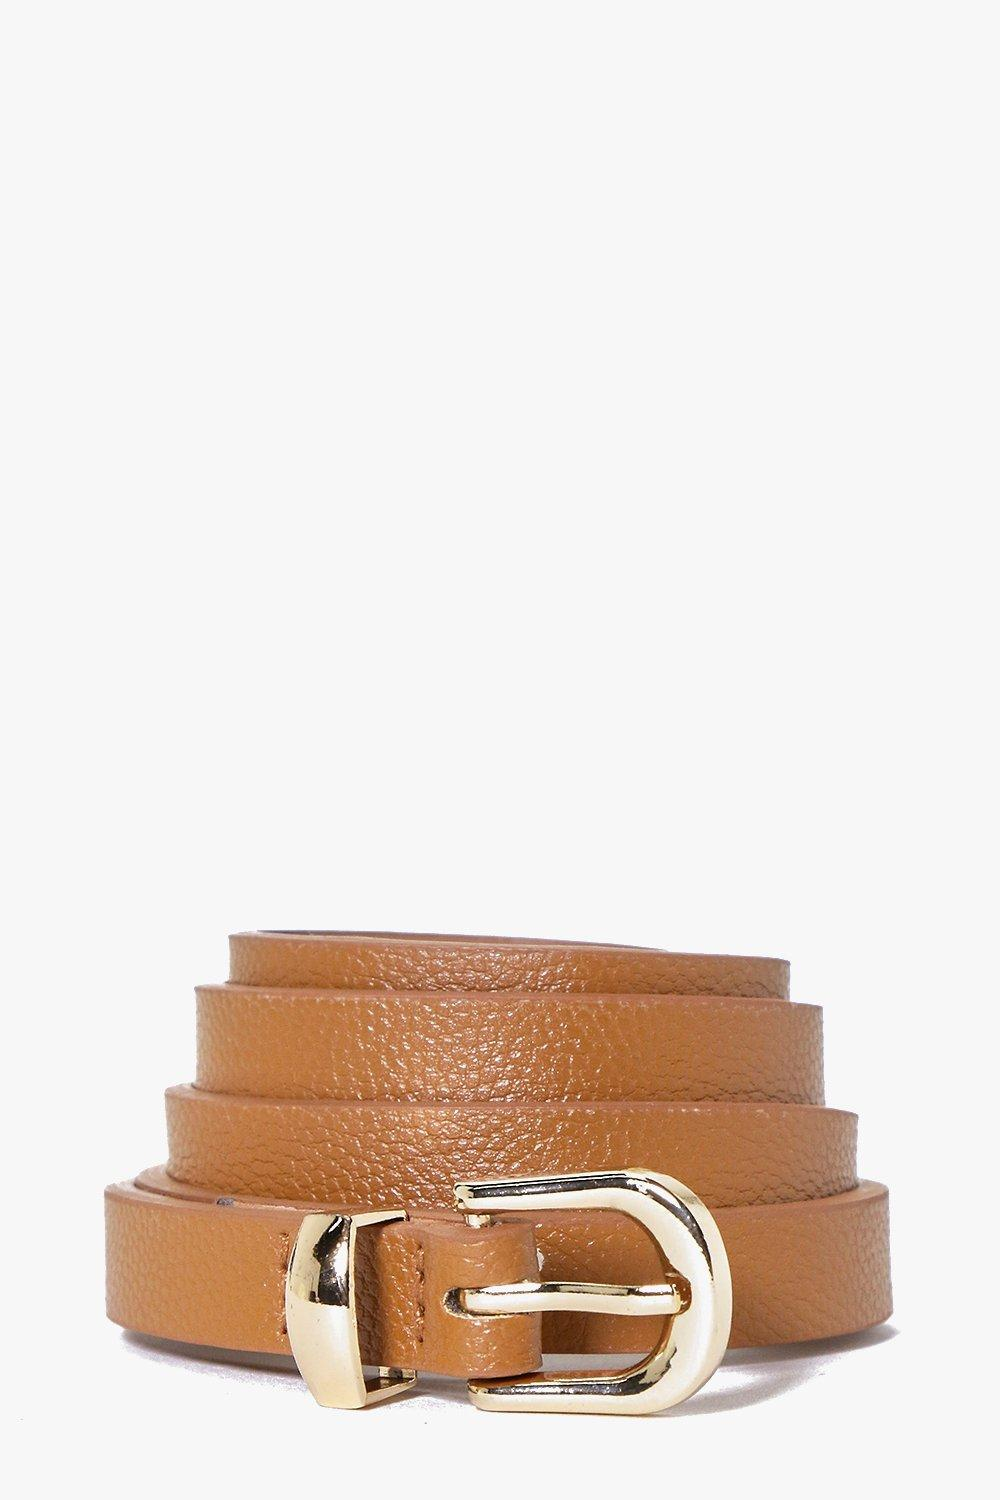 Skinny Belt - tan - Customise your outfit with a b